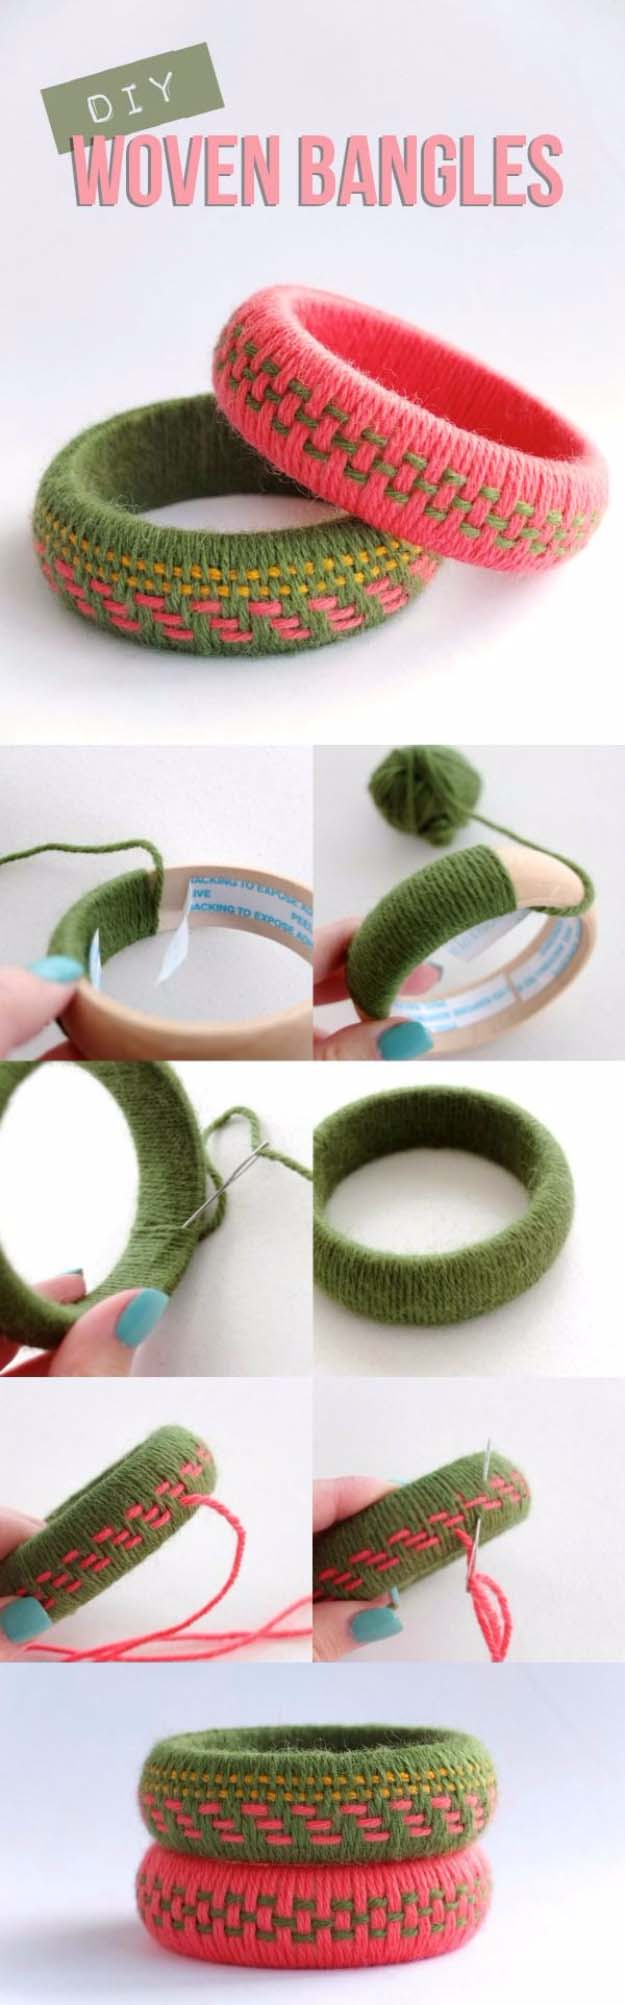 DIY Gifts for Your Girlfriend and Cool Homemade Gift Ideas for Her | Easy Creative DIY Projects and Tutorials for Christmas, Birthday and Anniversary Gifts for Mom, Sister, Aunt, Teacher or Friends | DIY Woven Yarn Bangles for Unique Homemade Present #diygifts #diyideas